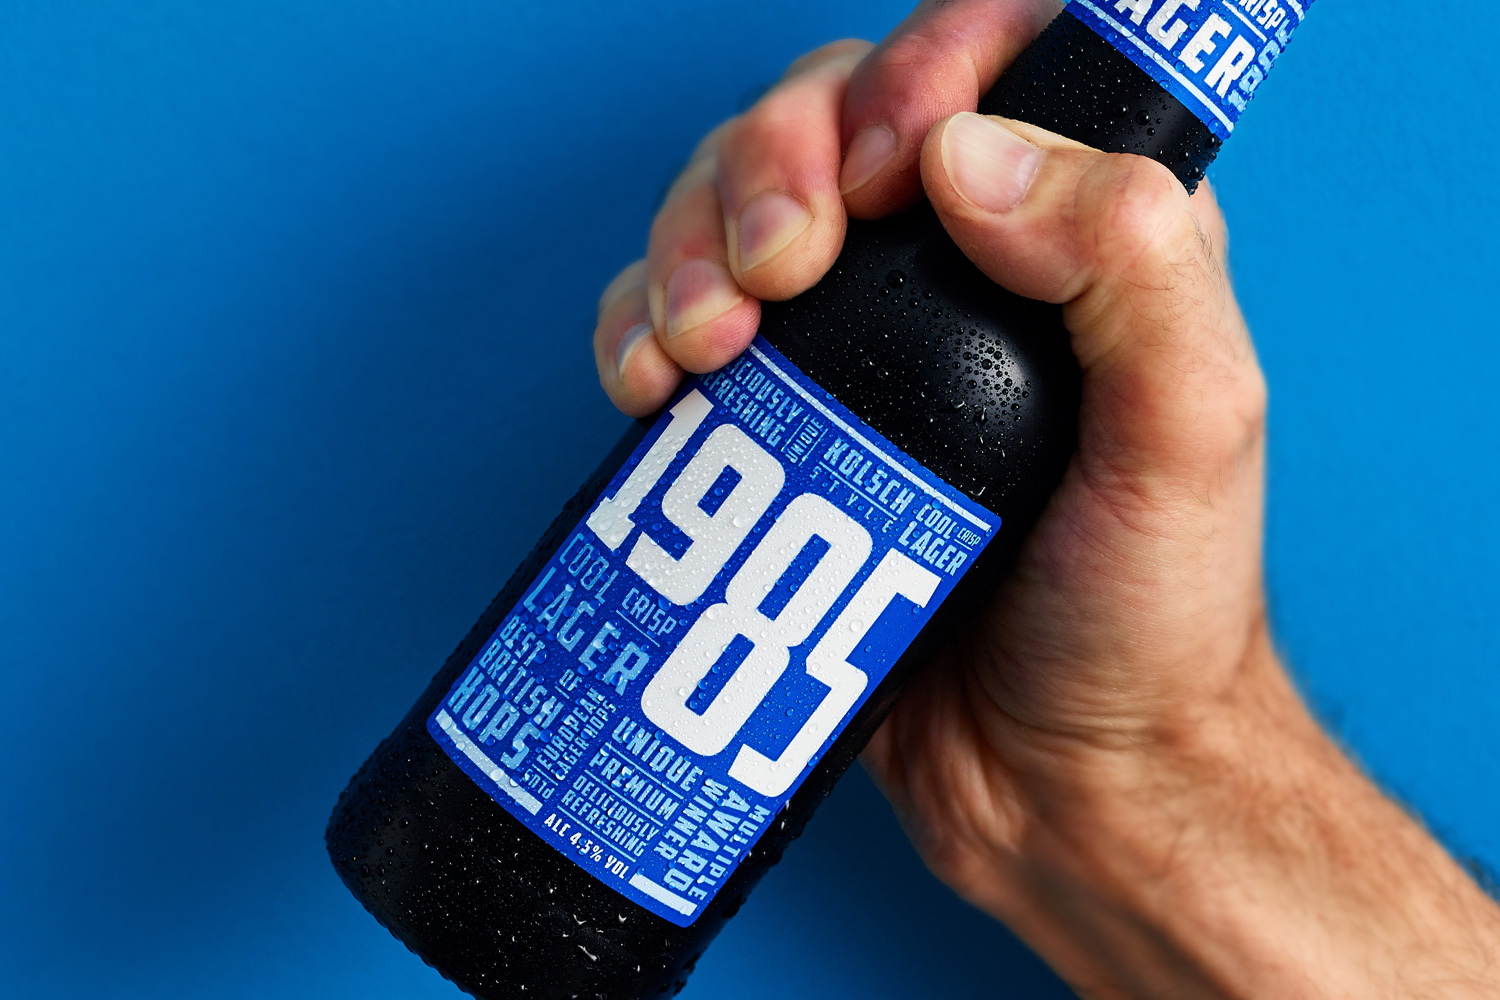 Wye Valley Brewery 1985 lager